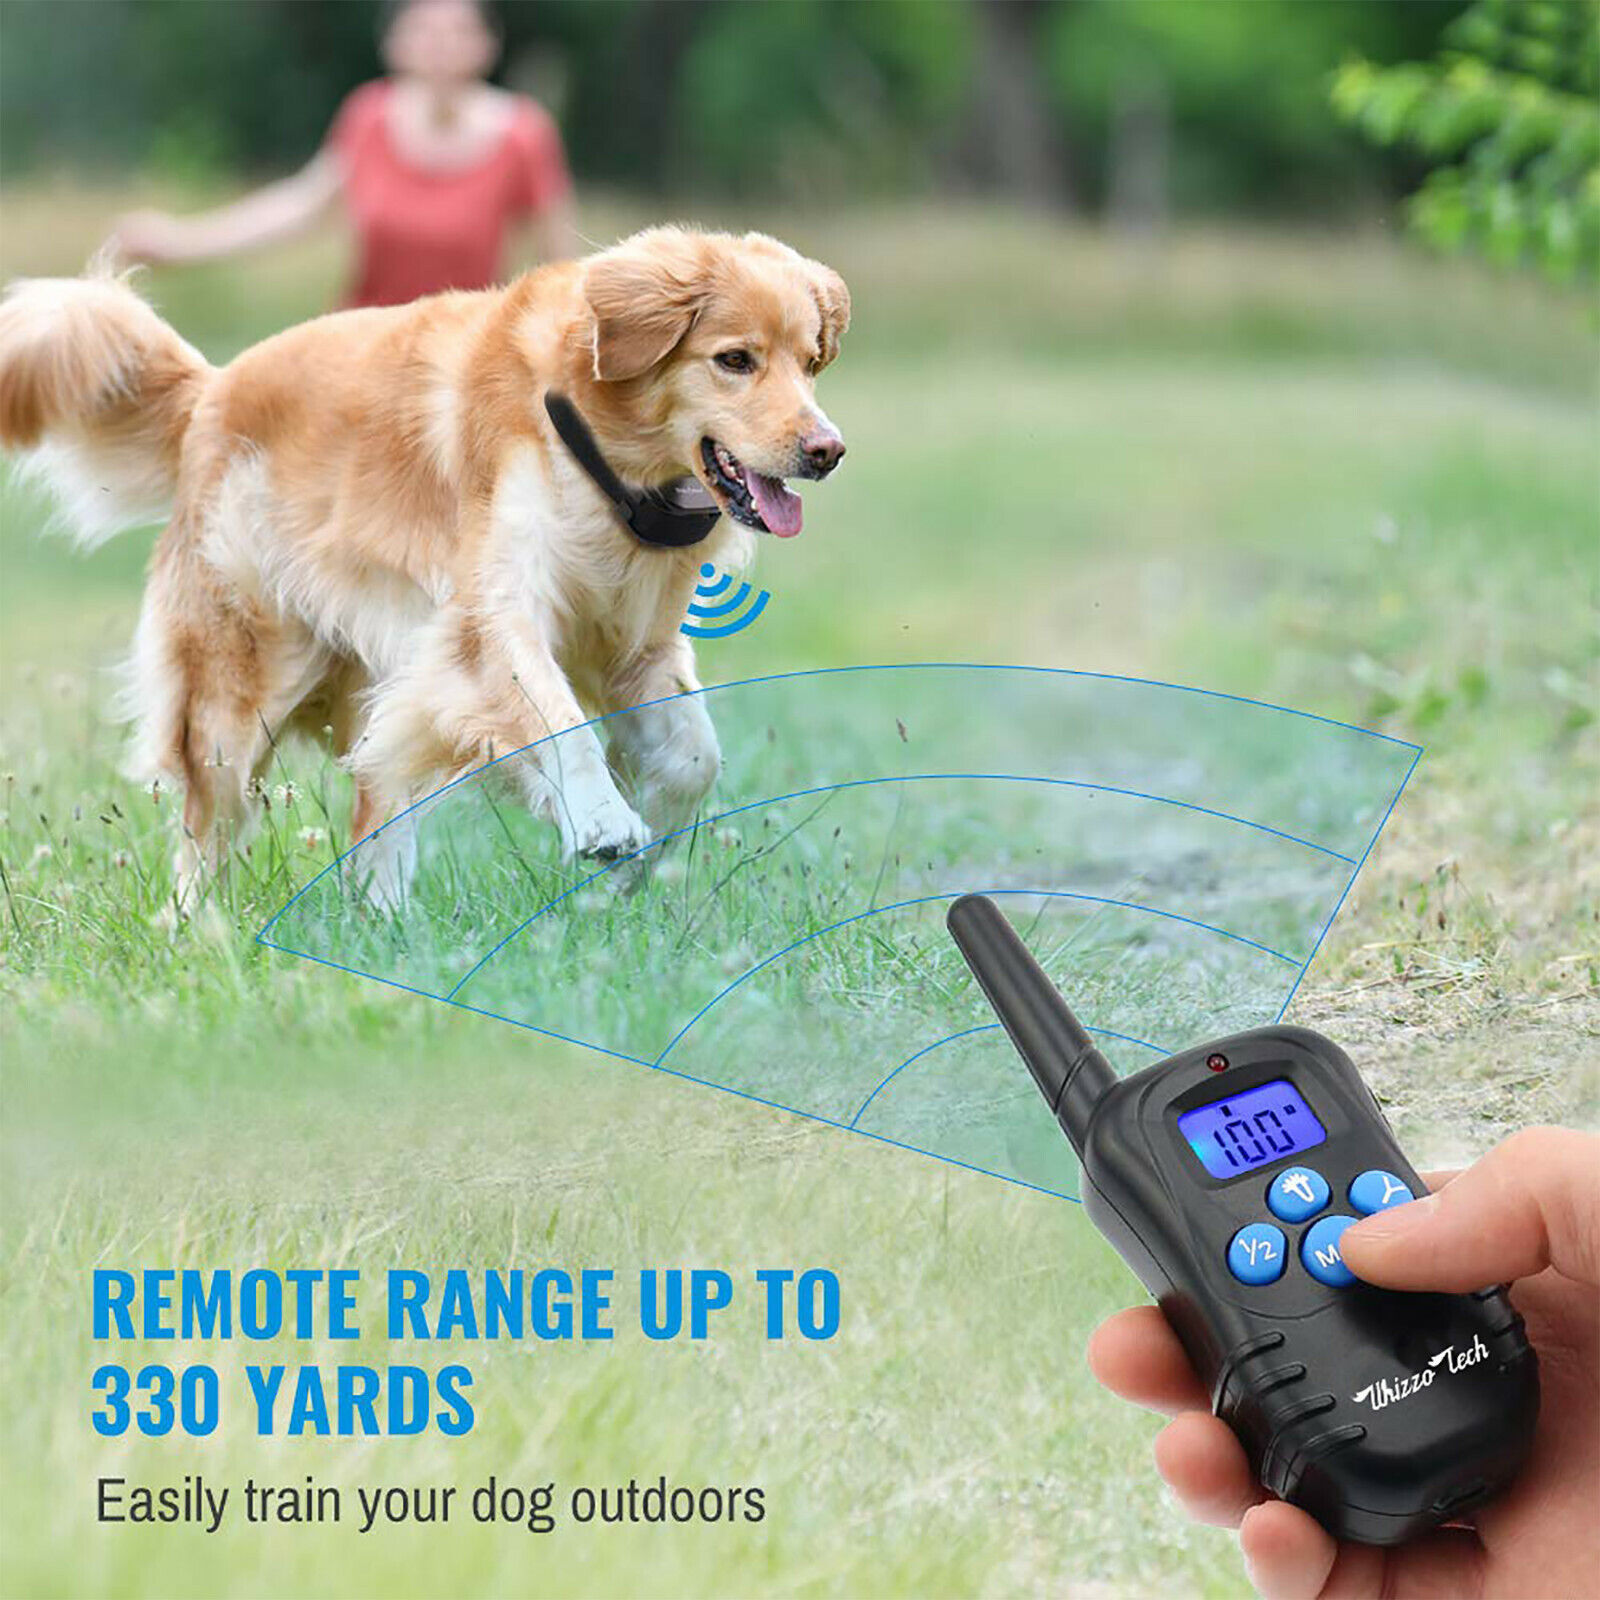 Dog Shock Training Collar Rechargeable LCD Remote Control Waterproof 330 Yards Bark Collars